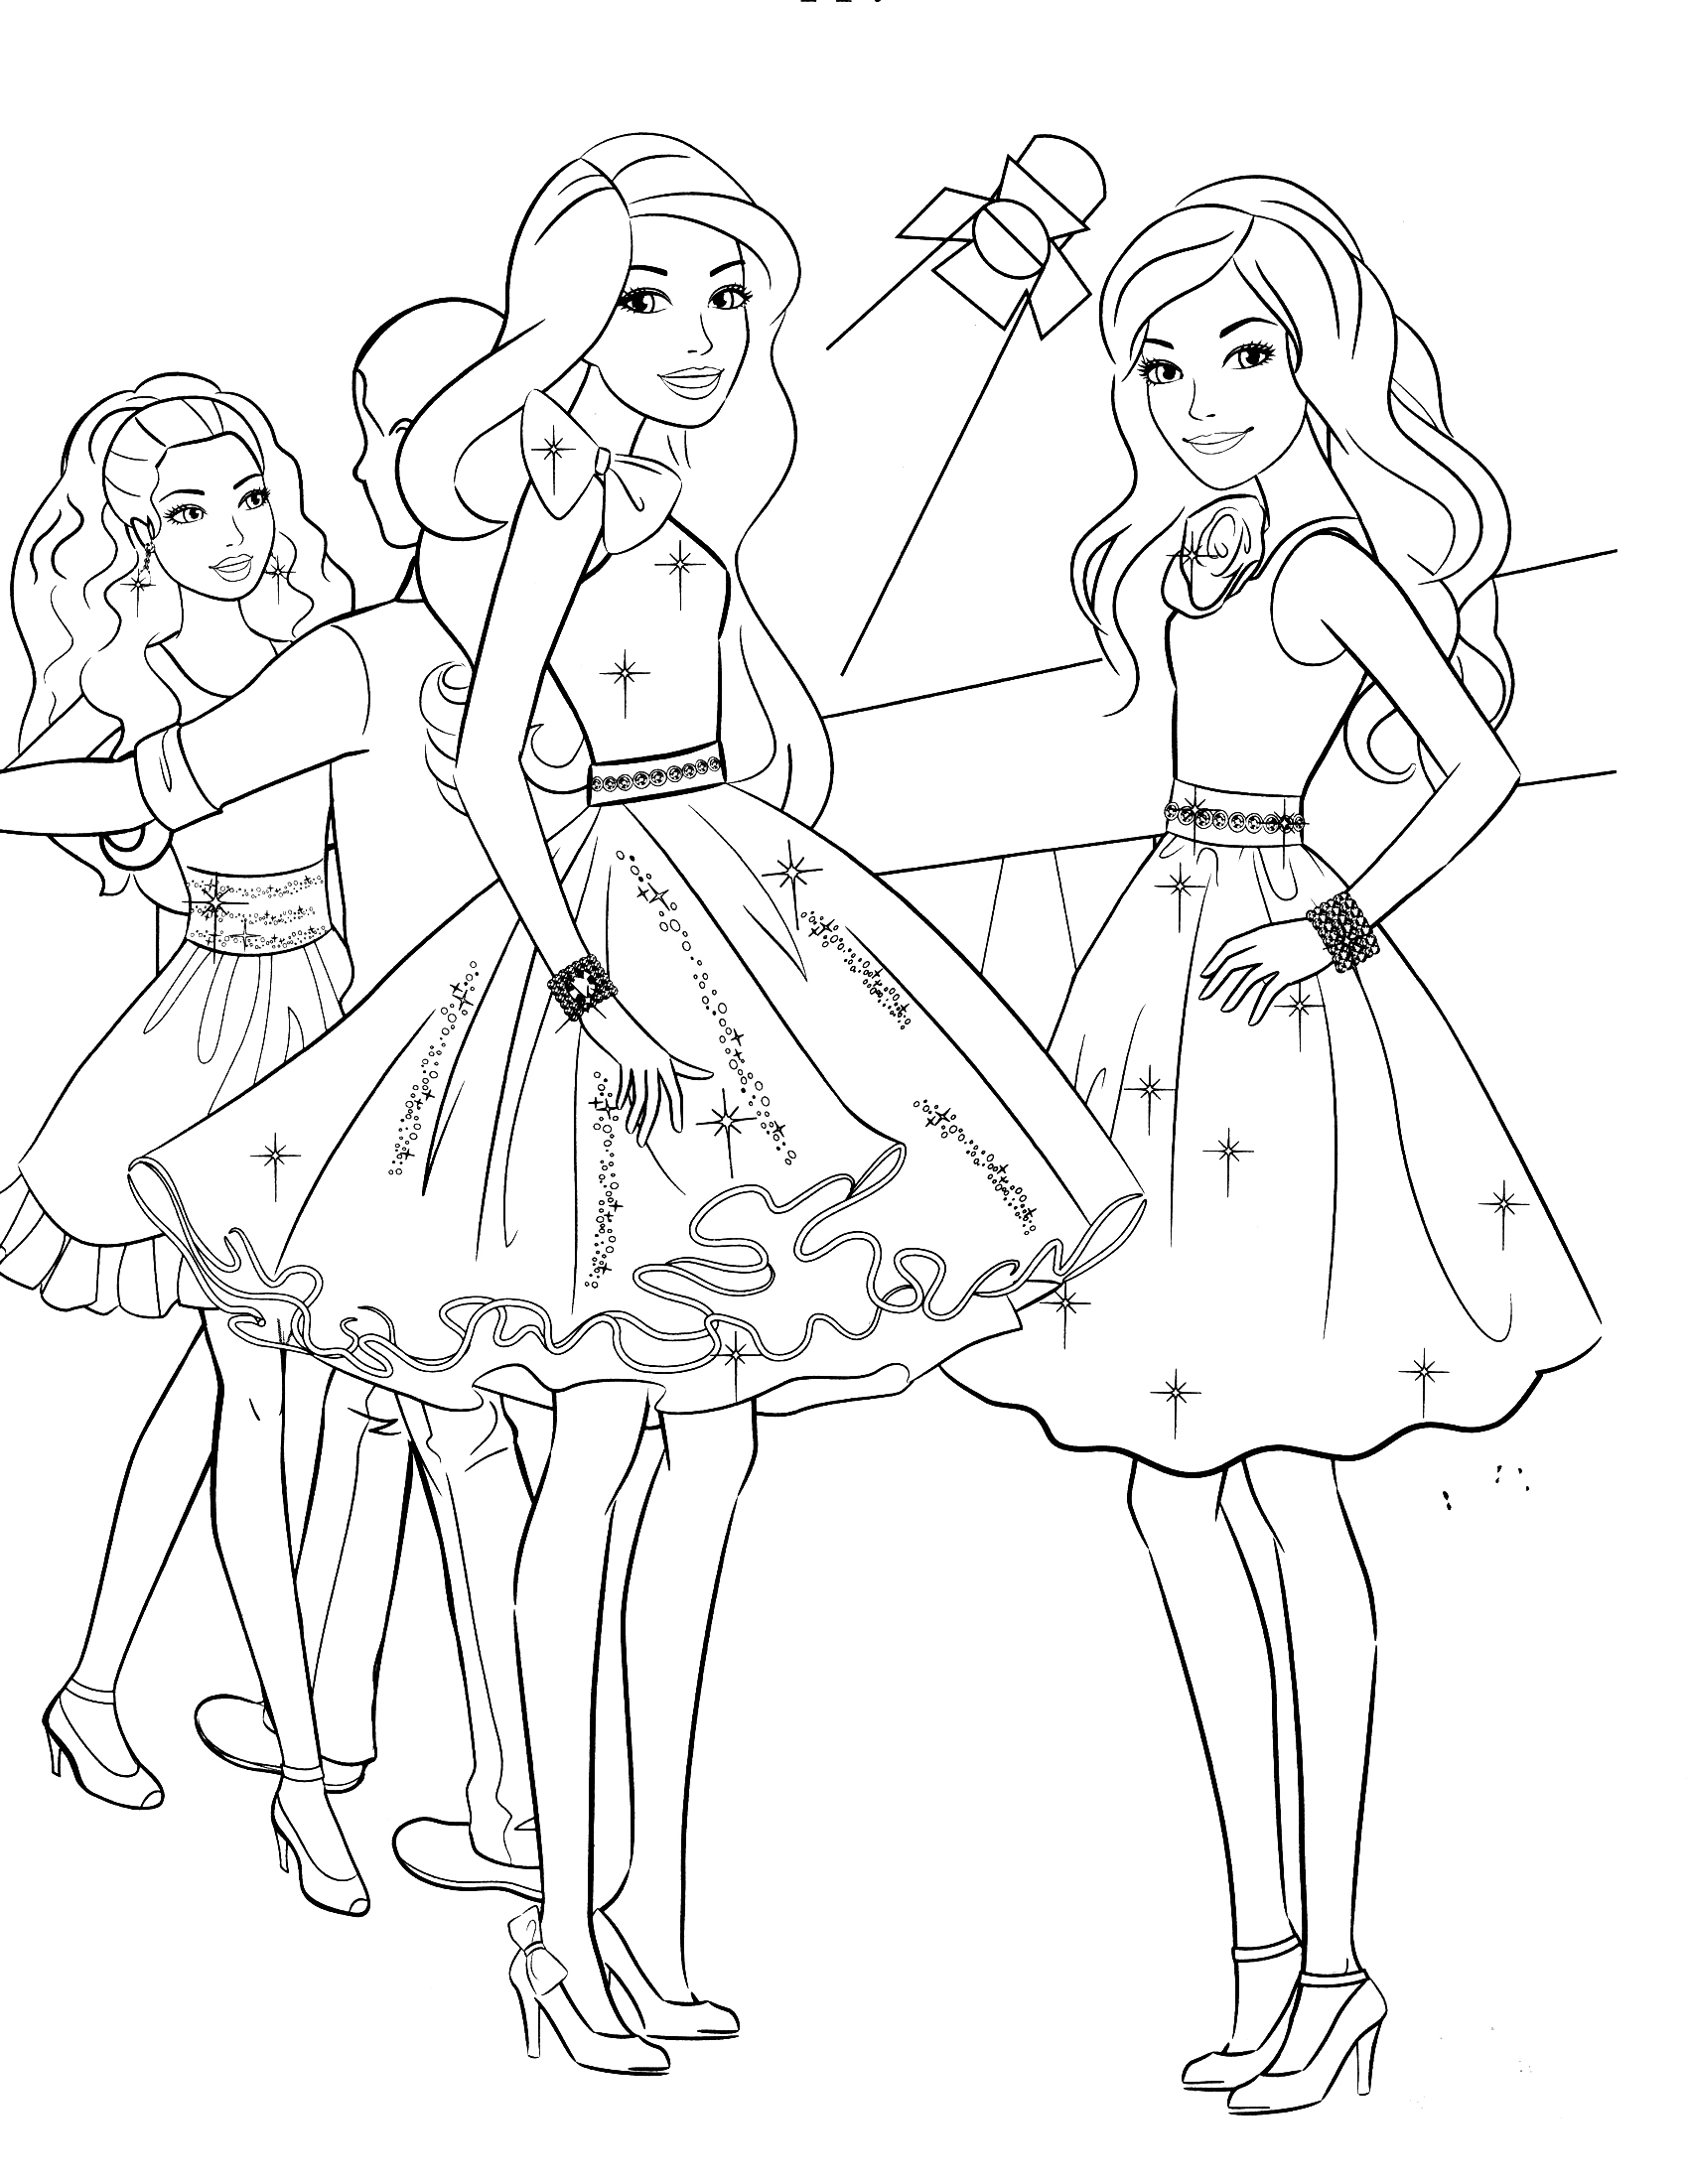 barbie coloring coloring pages barbie free printable coloring pages barbie coloring